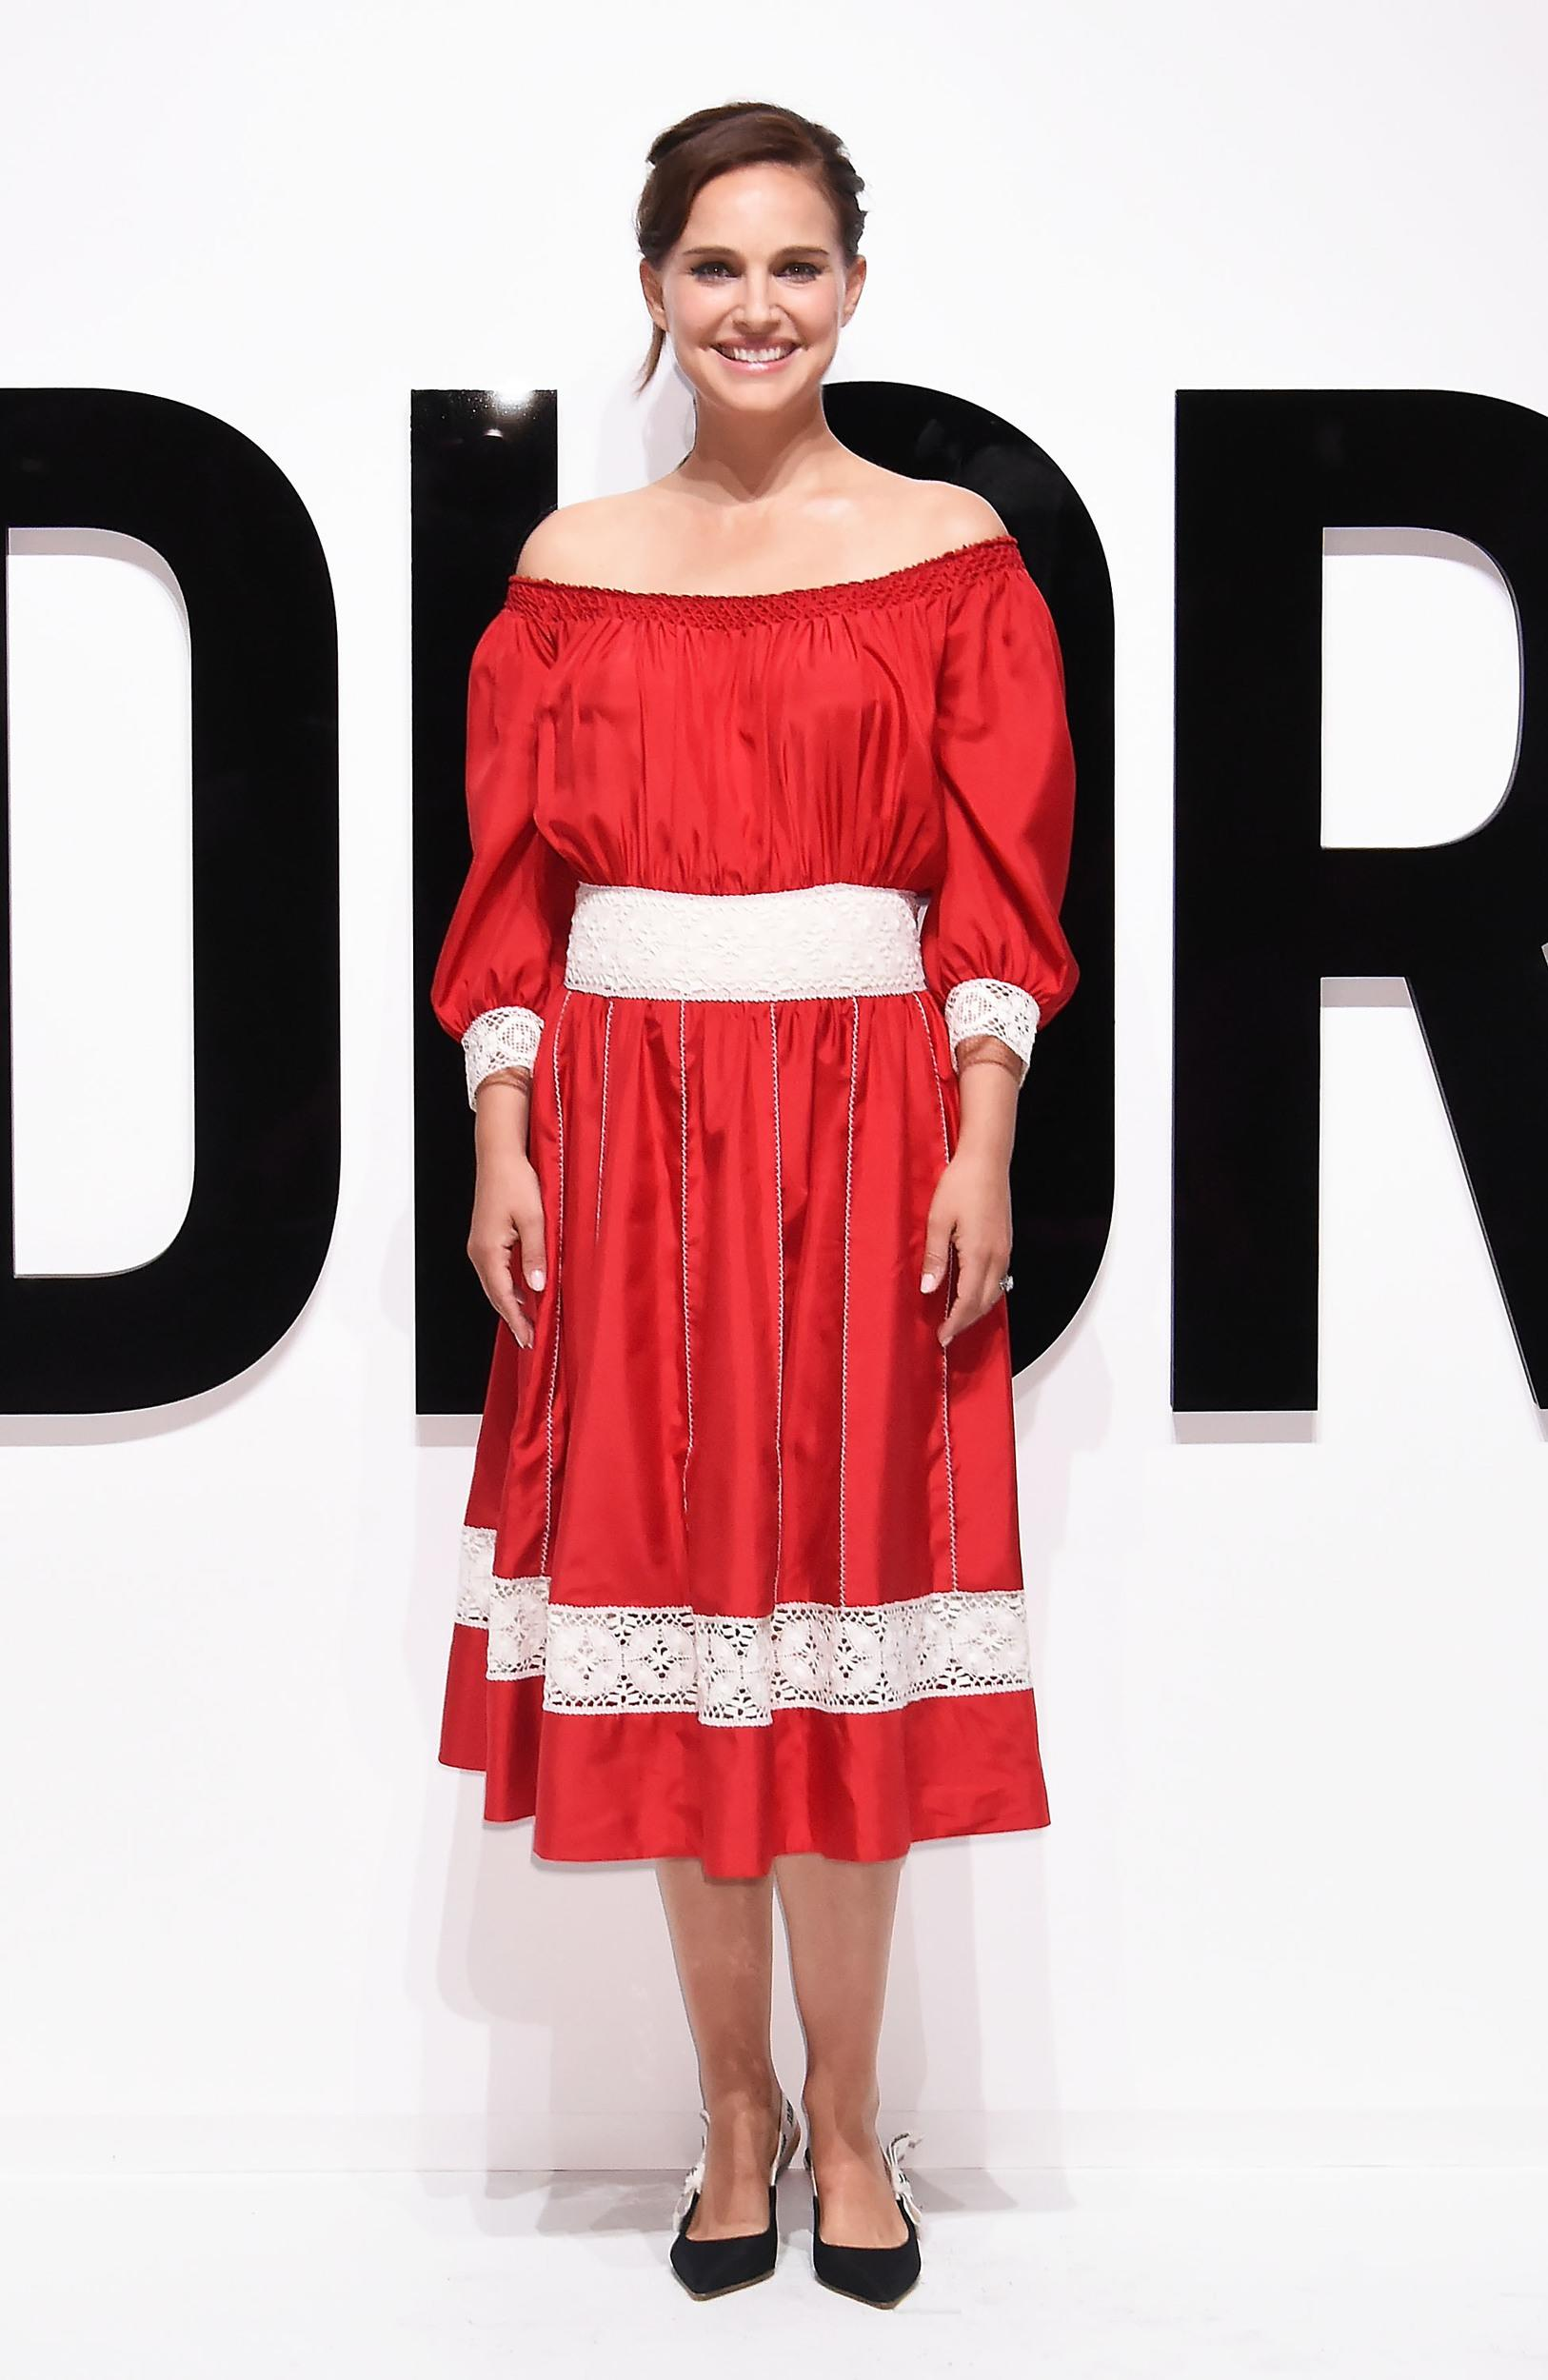 TOKYO, JAPAN - JULY 19:  Natalie Portman attends the Dior For Love photocall at Warehouse Terrada on July 19, 2017 in Tokyo, Japan.  (Photo by Jun Sato/WireImage)